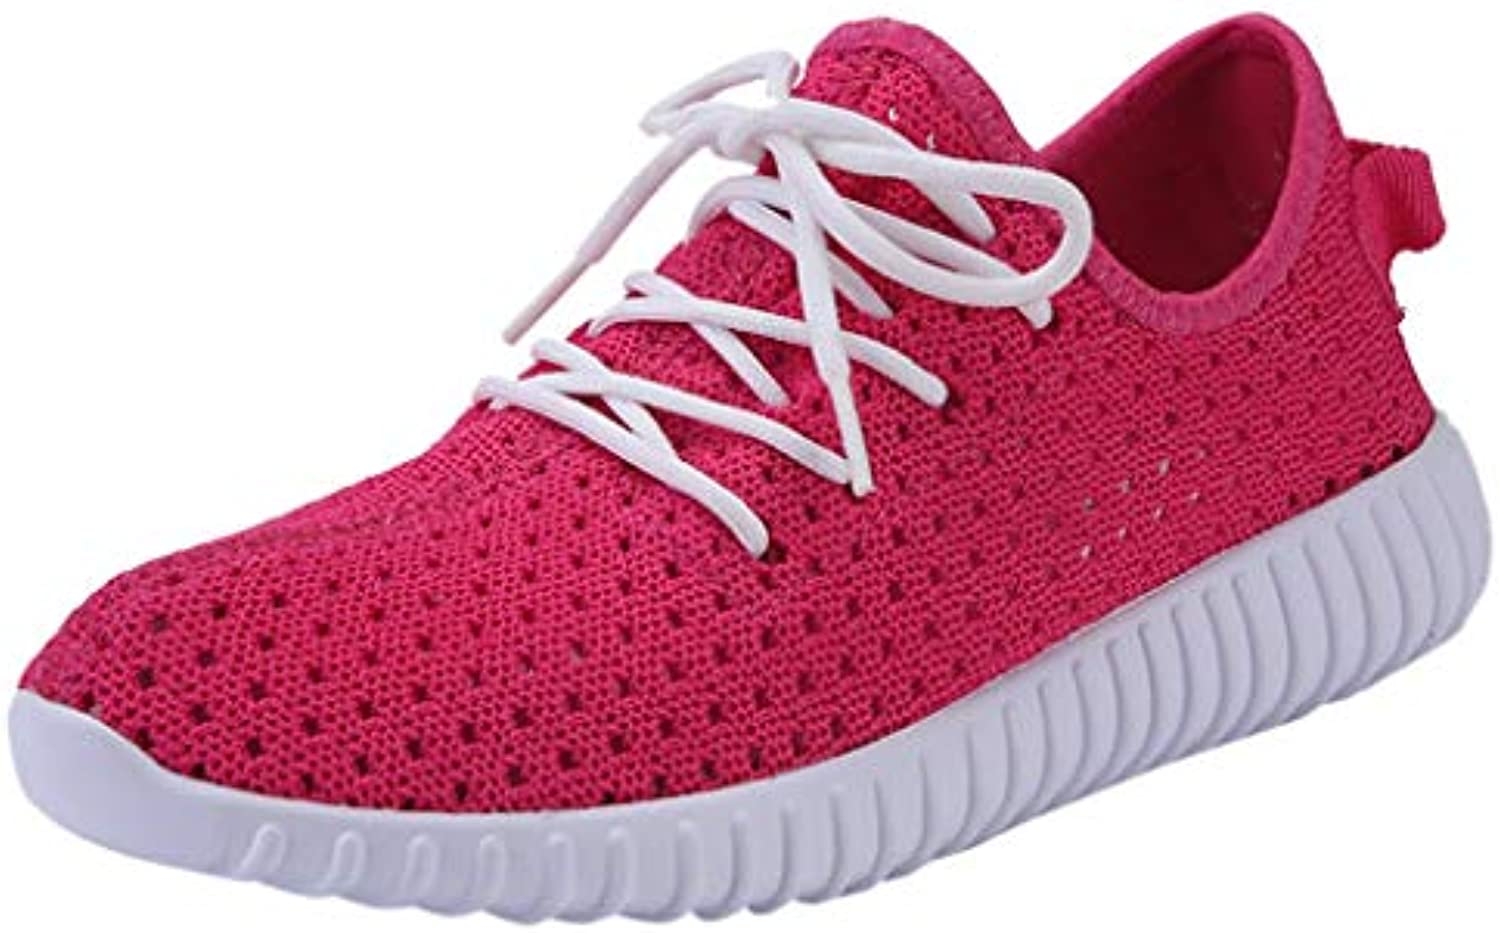 BESSKY Women's Sports Fashion Outdoors Casual shoes Breathable Footwear Mesh Sneaker